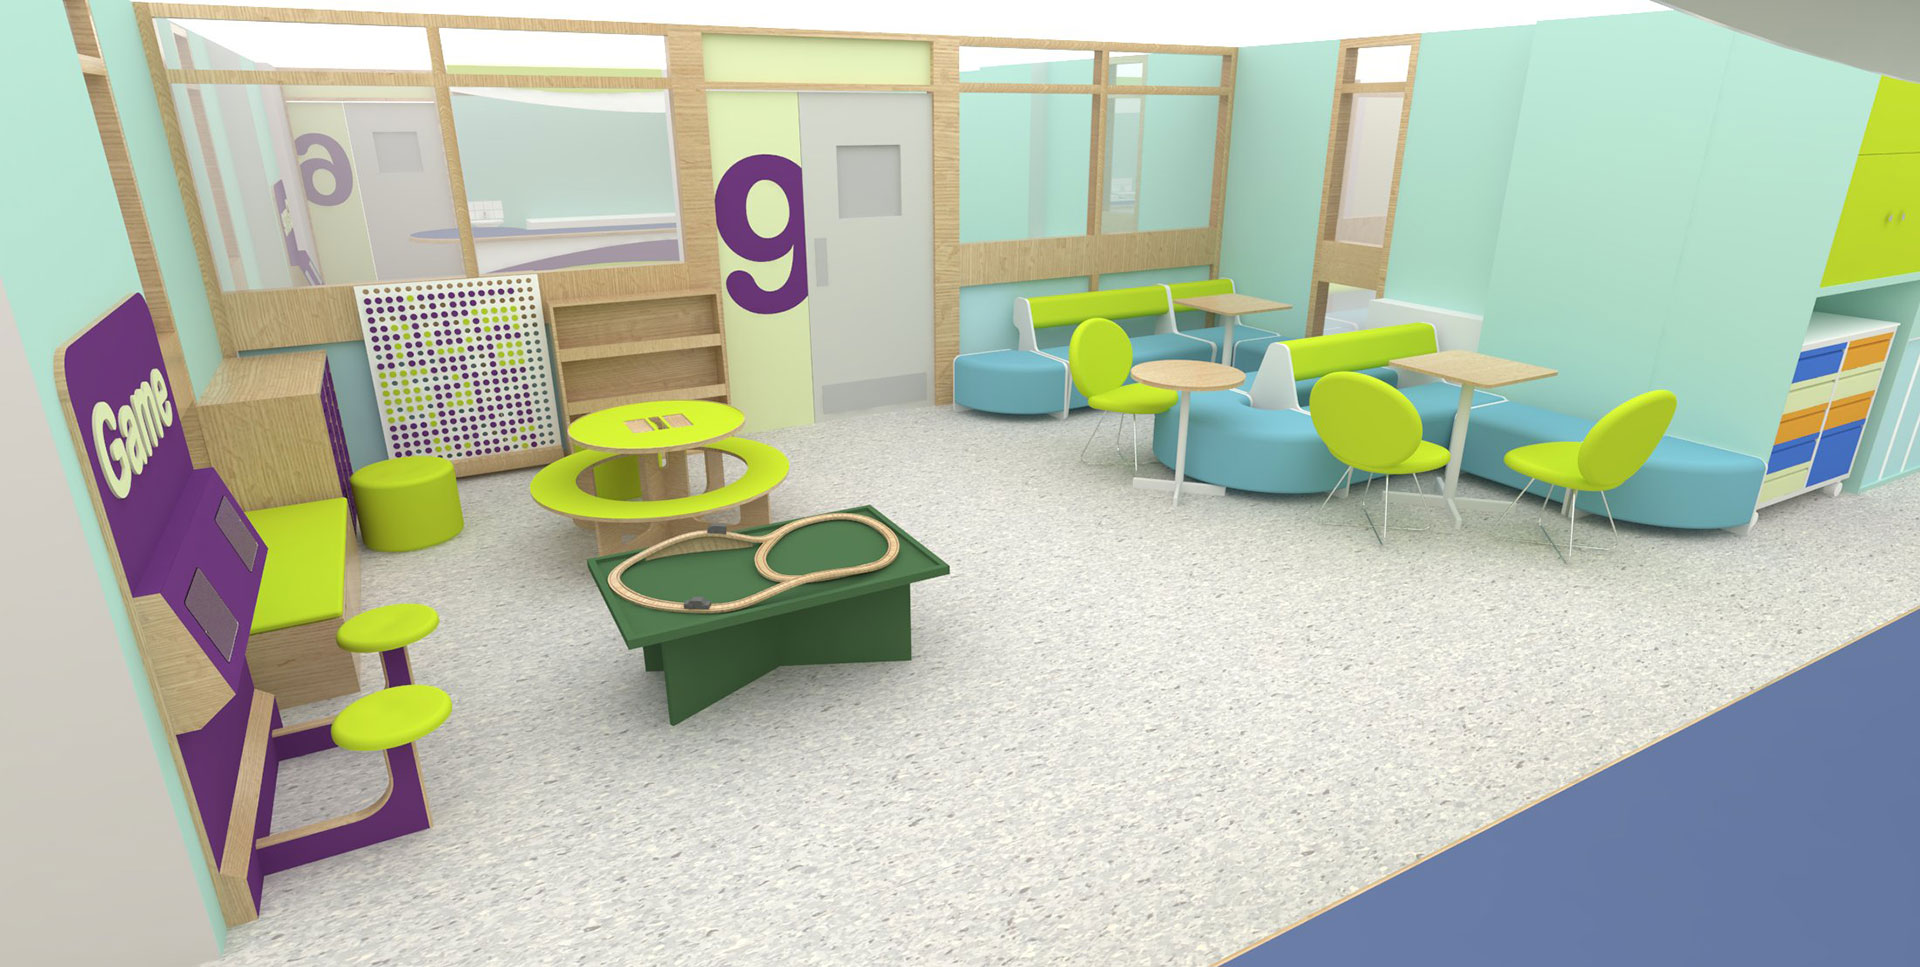 Ipad interactives within Yeovil Pediatric Day space